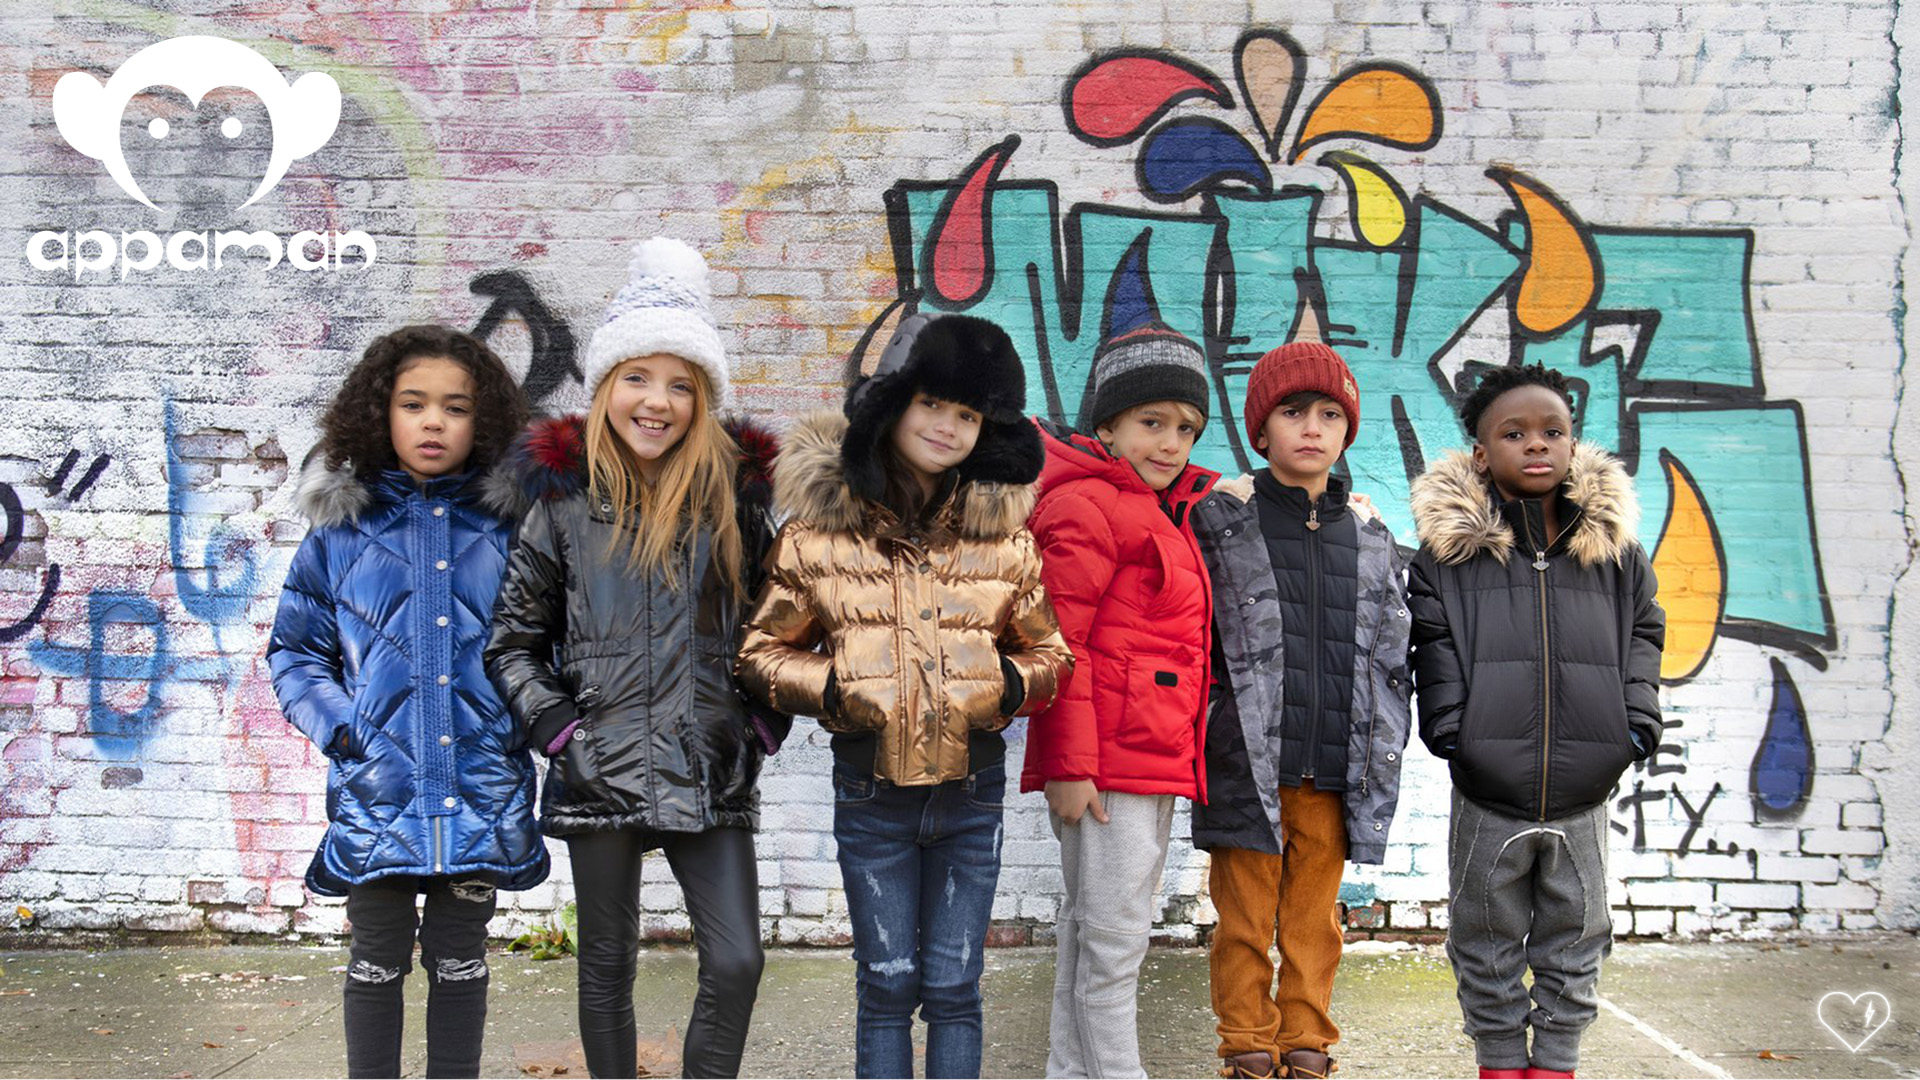 SHOP APPAMAN ONLINE - KIDS CURATED APPAREL